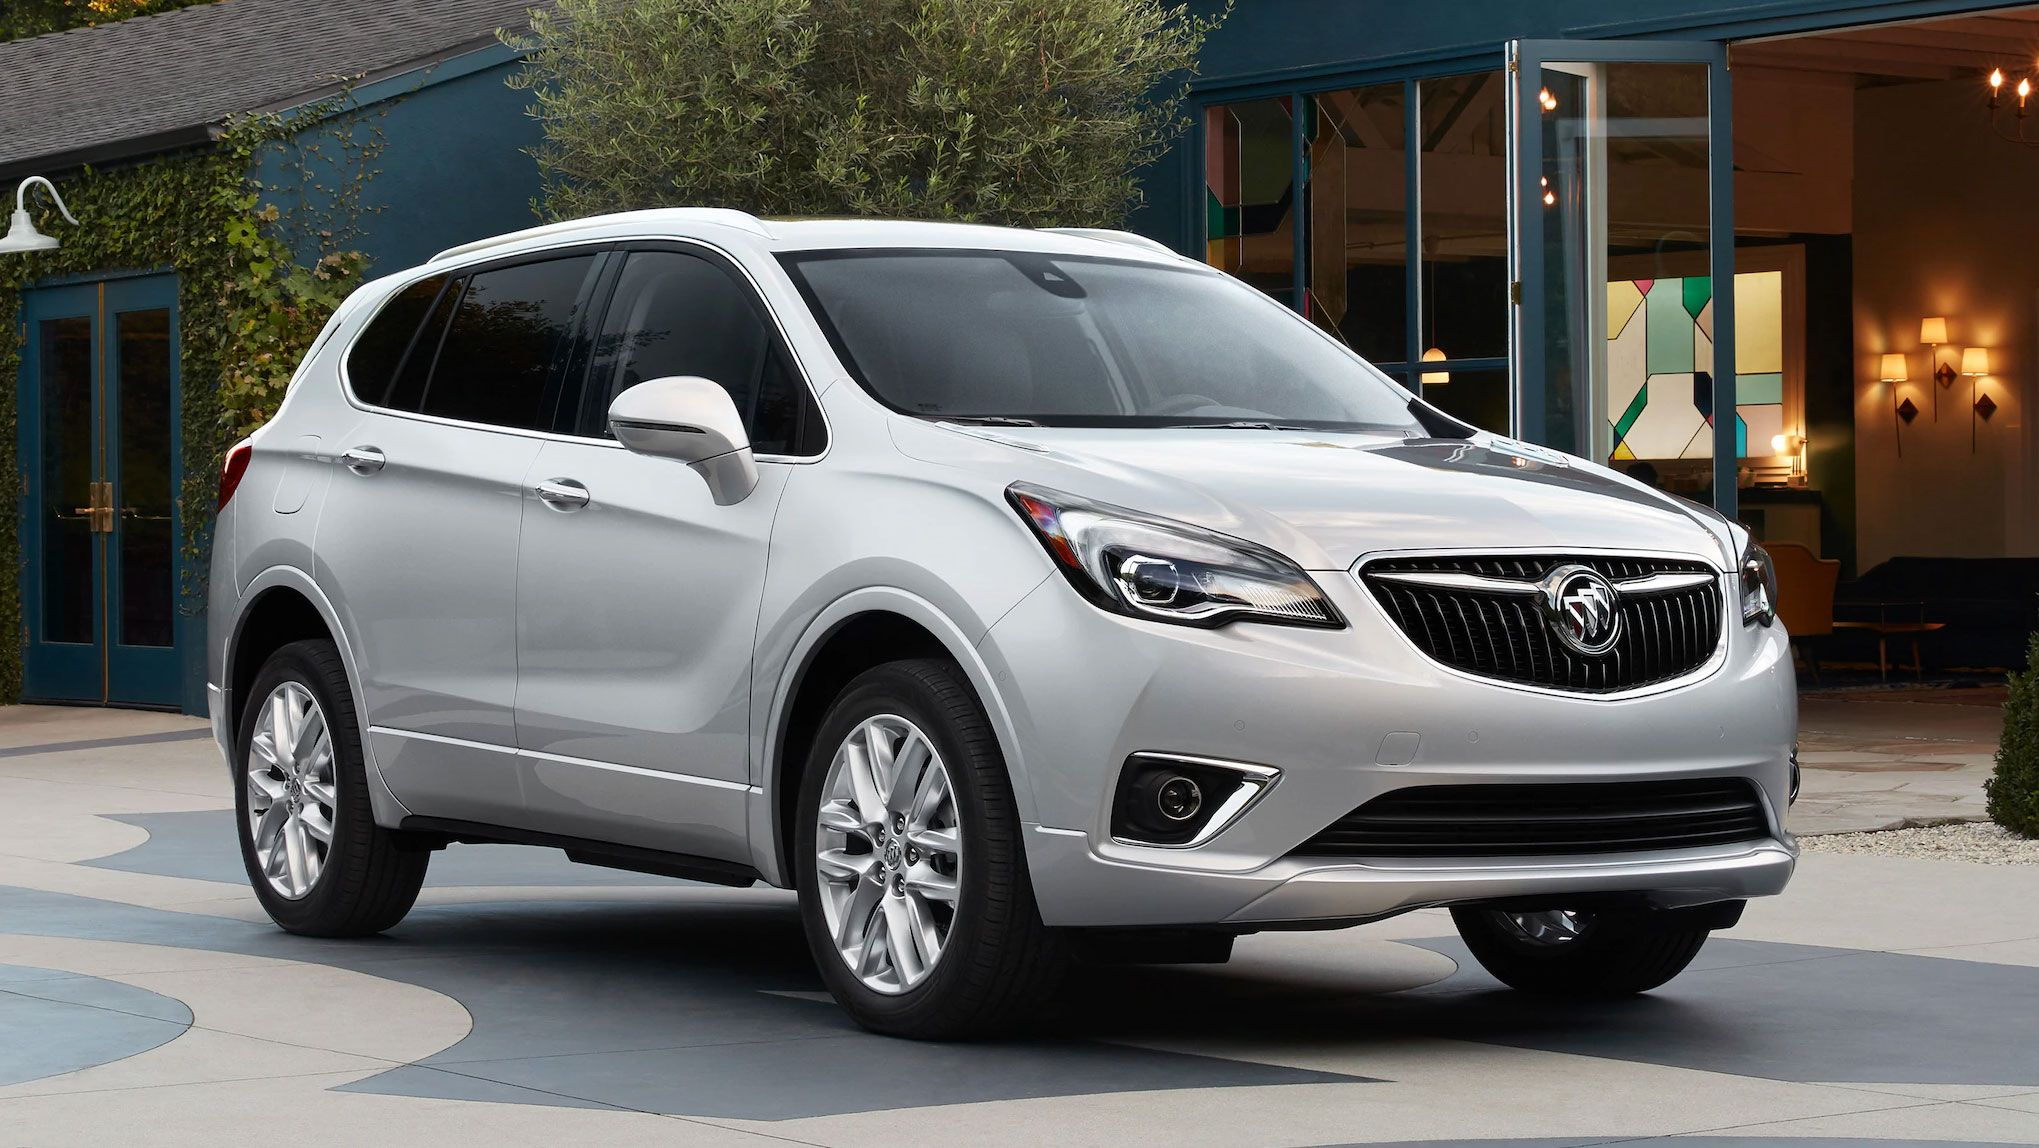 2020 Buick Envision Review, Pricing, And Specs Is The New 2021 Buick Envision Flat Towable